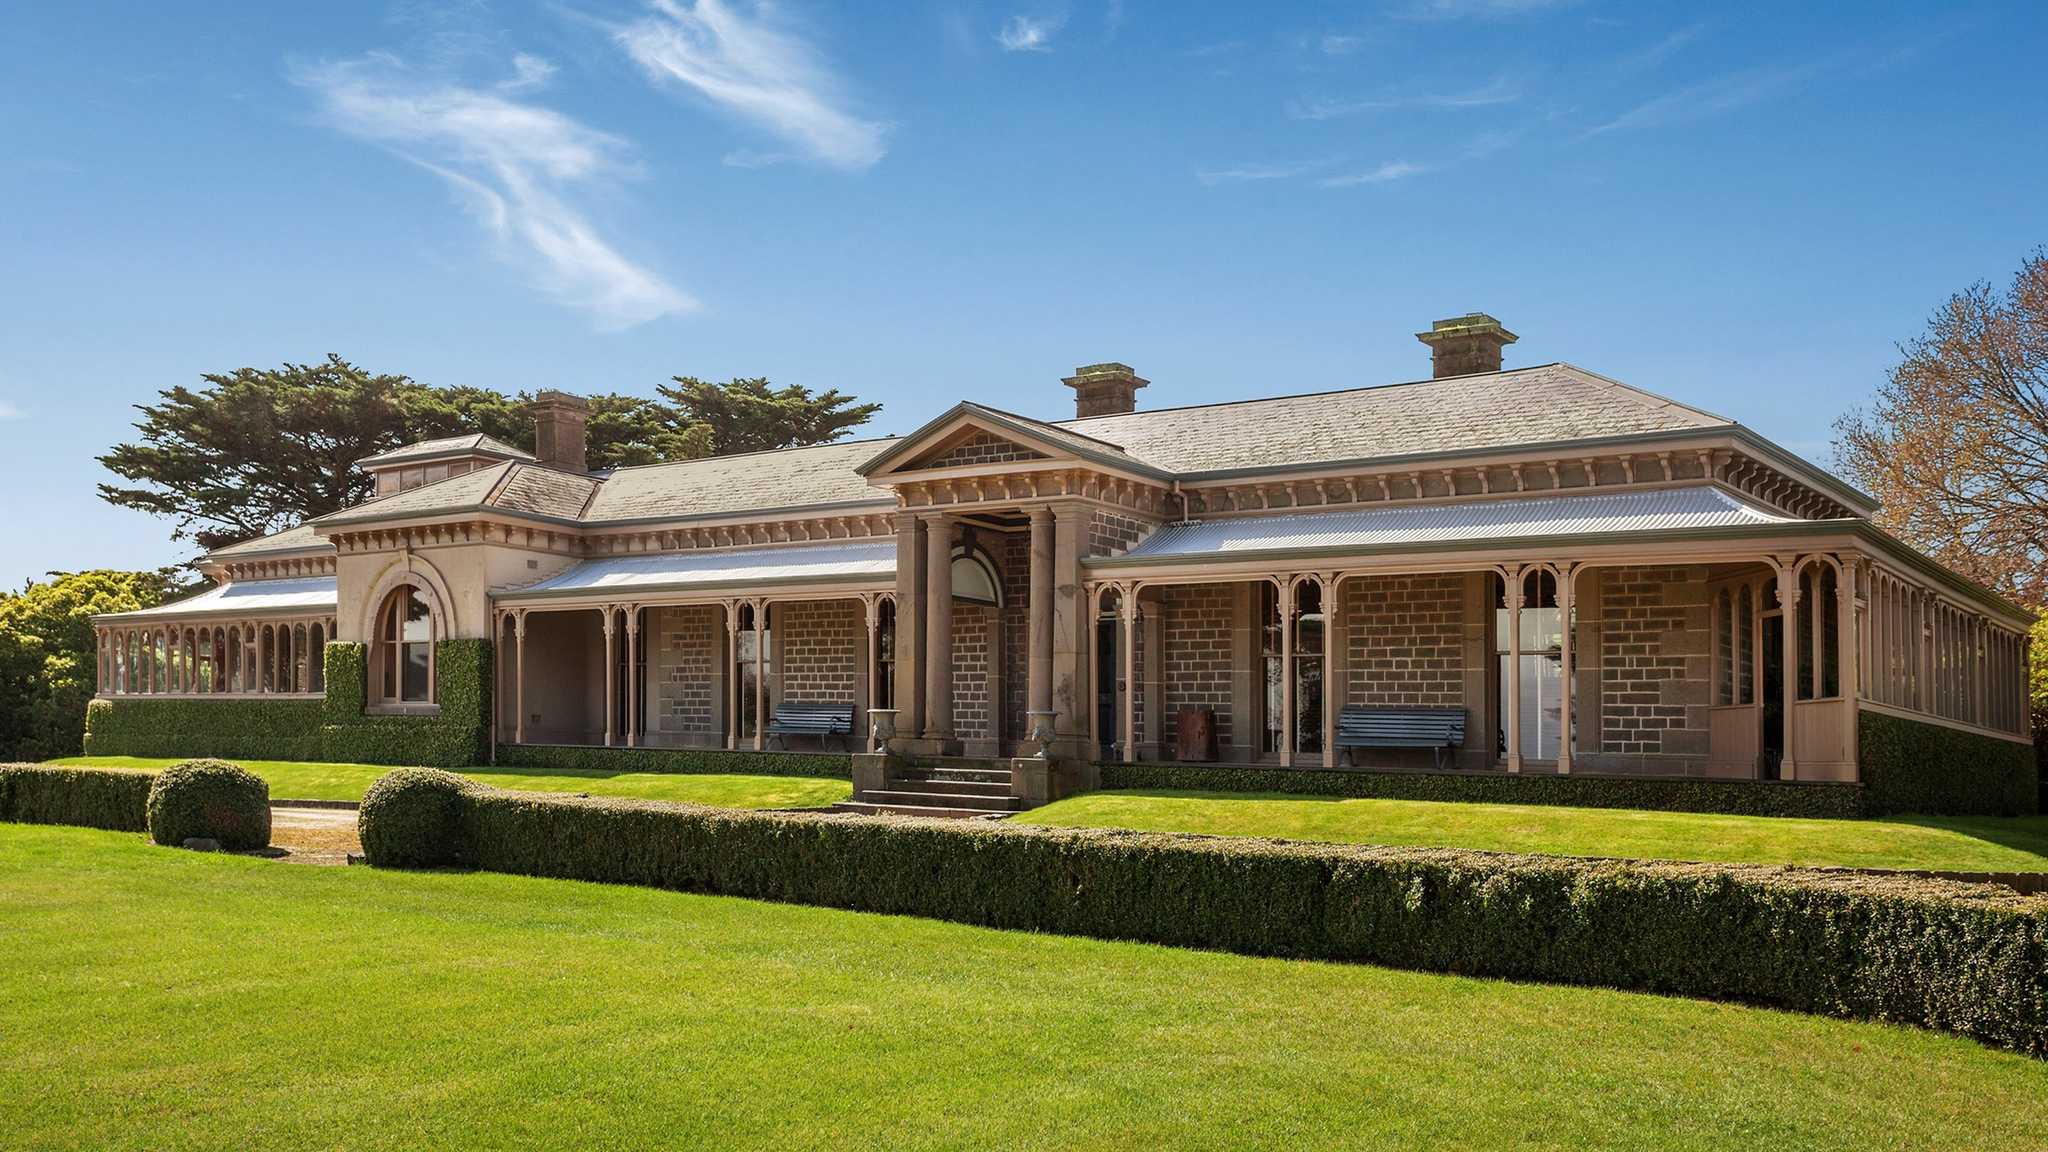 Built in 1861, the homestead is National Trust listed as a building of historical significance. Notable achitect Charles Webb designed the building. The homestead is built around an inner courtyard, which has a stunning horizontal elm within it.